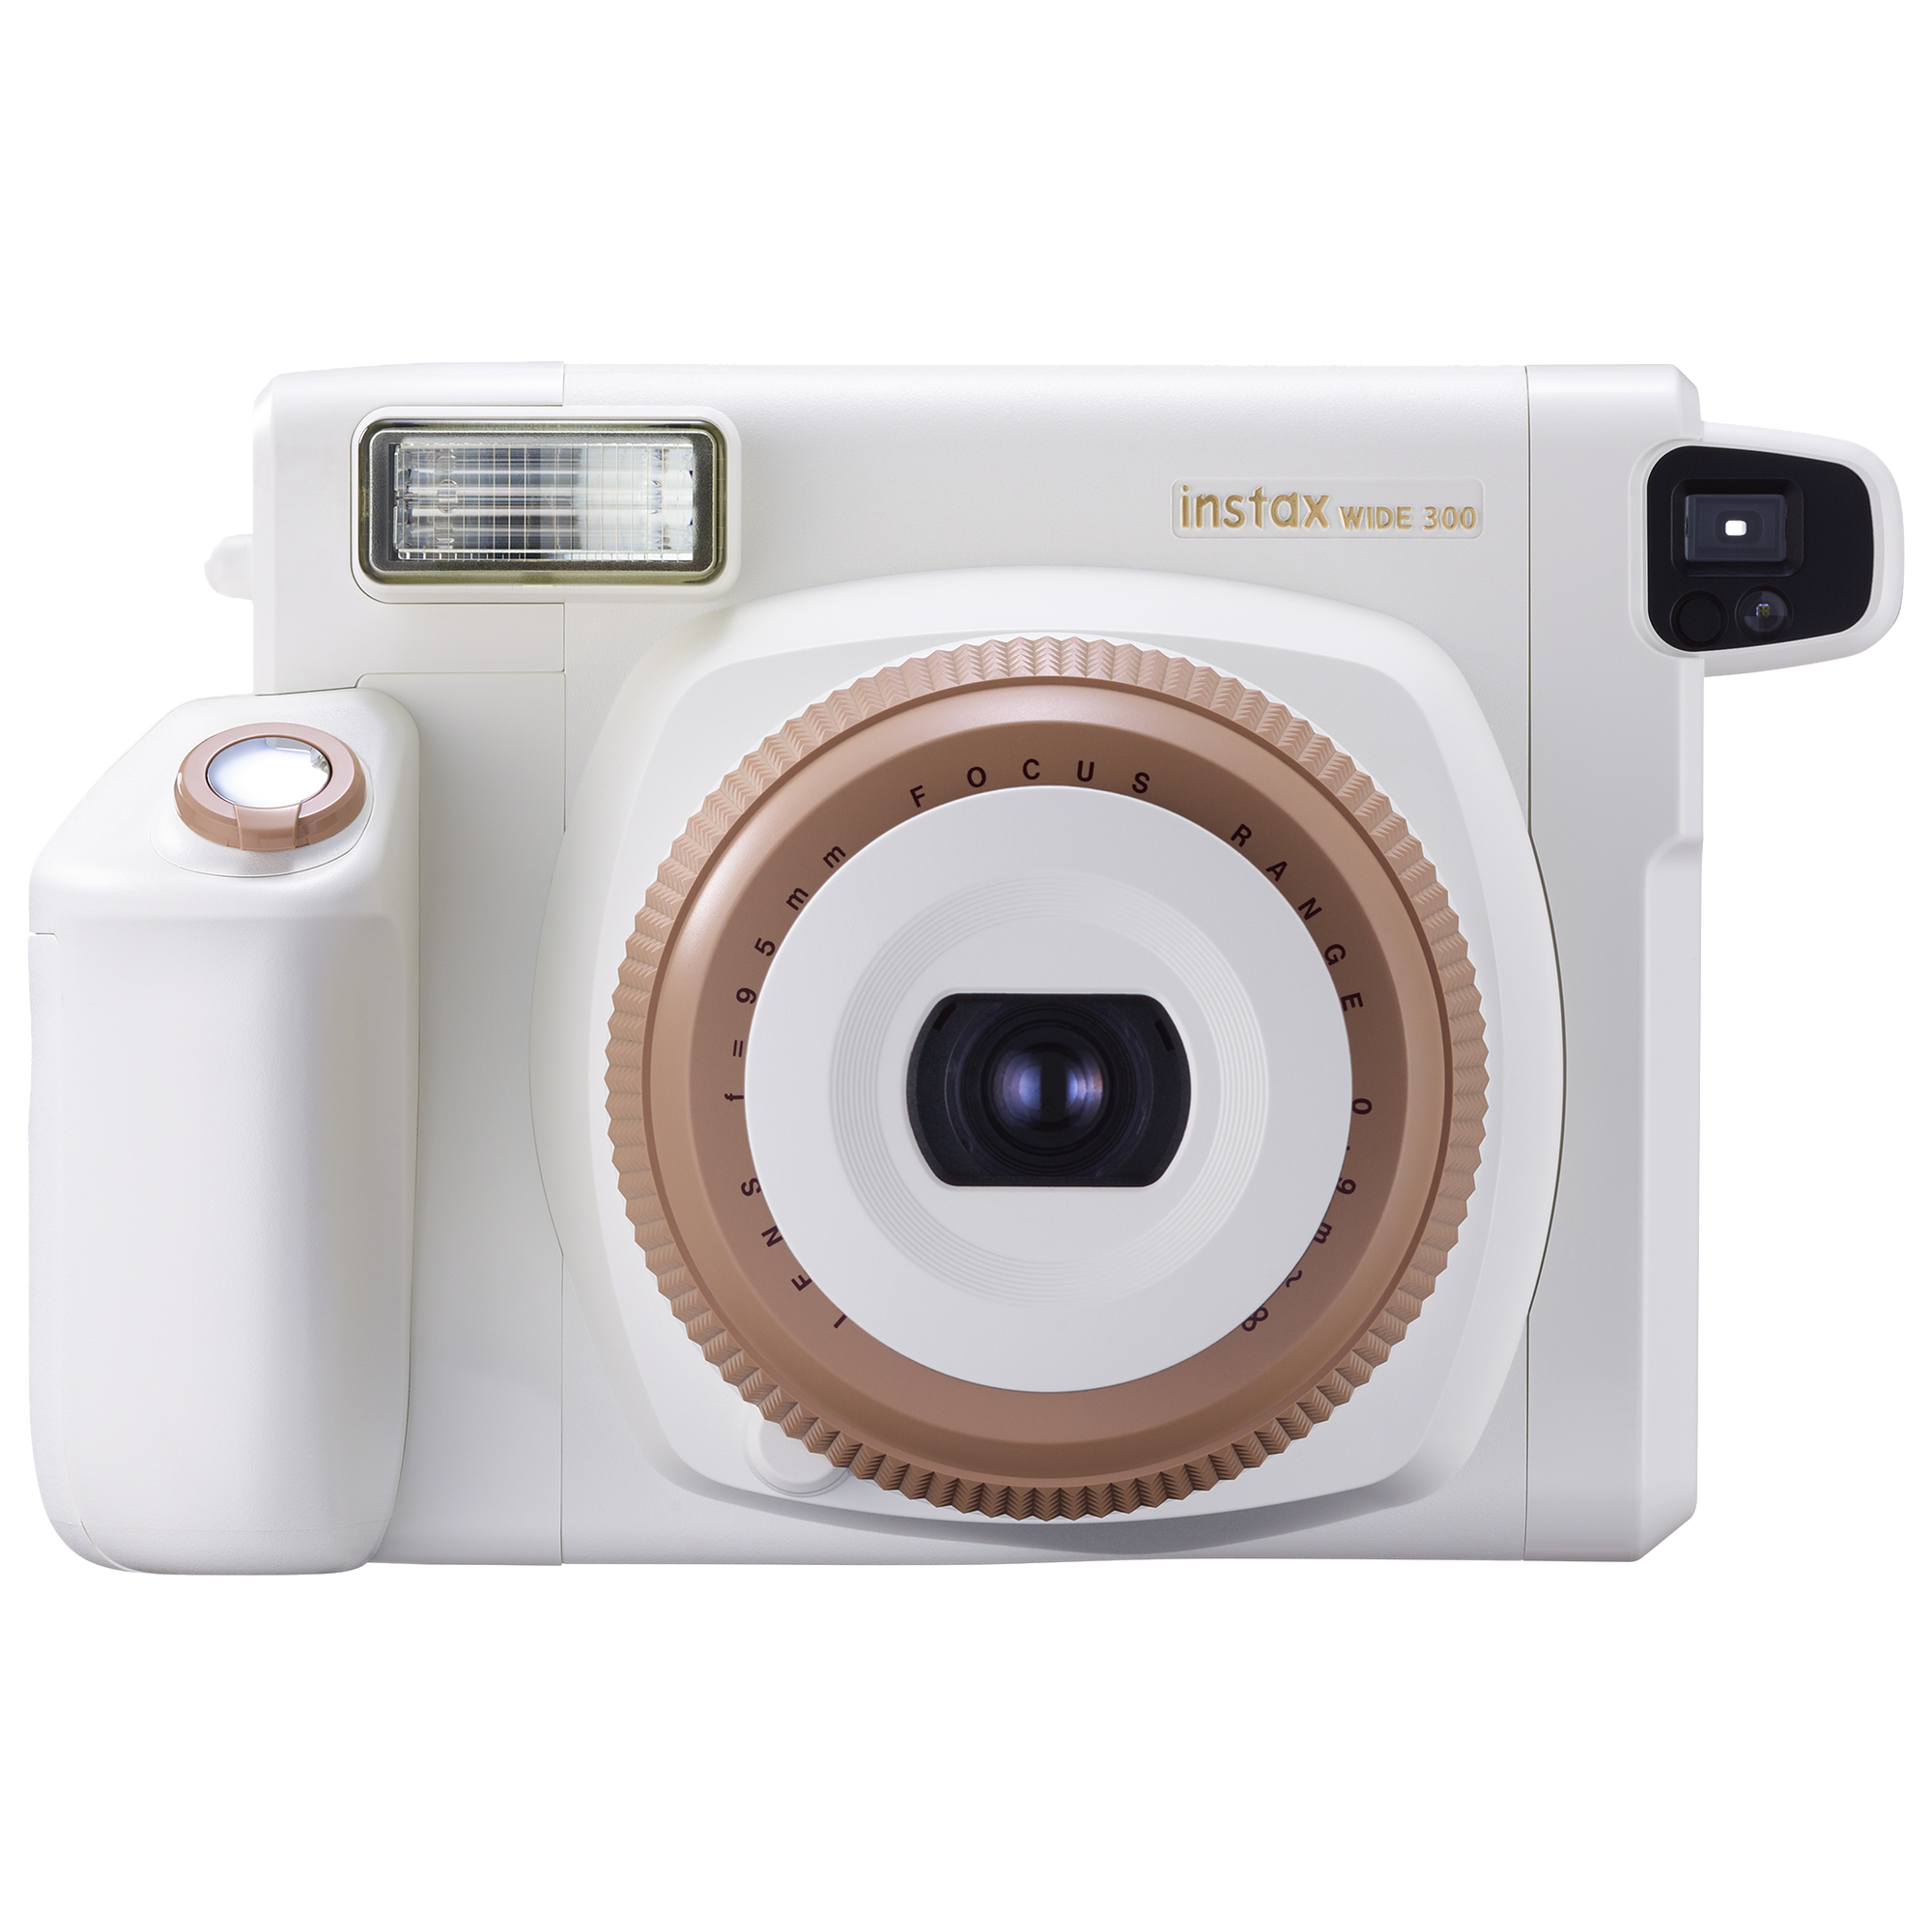 Momentinis fotoaparatas instax WIDE 300 Toffee